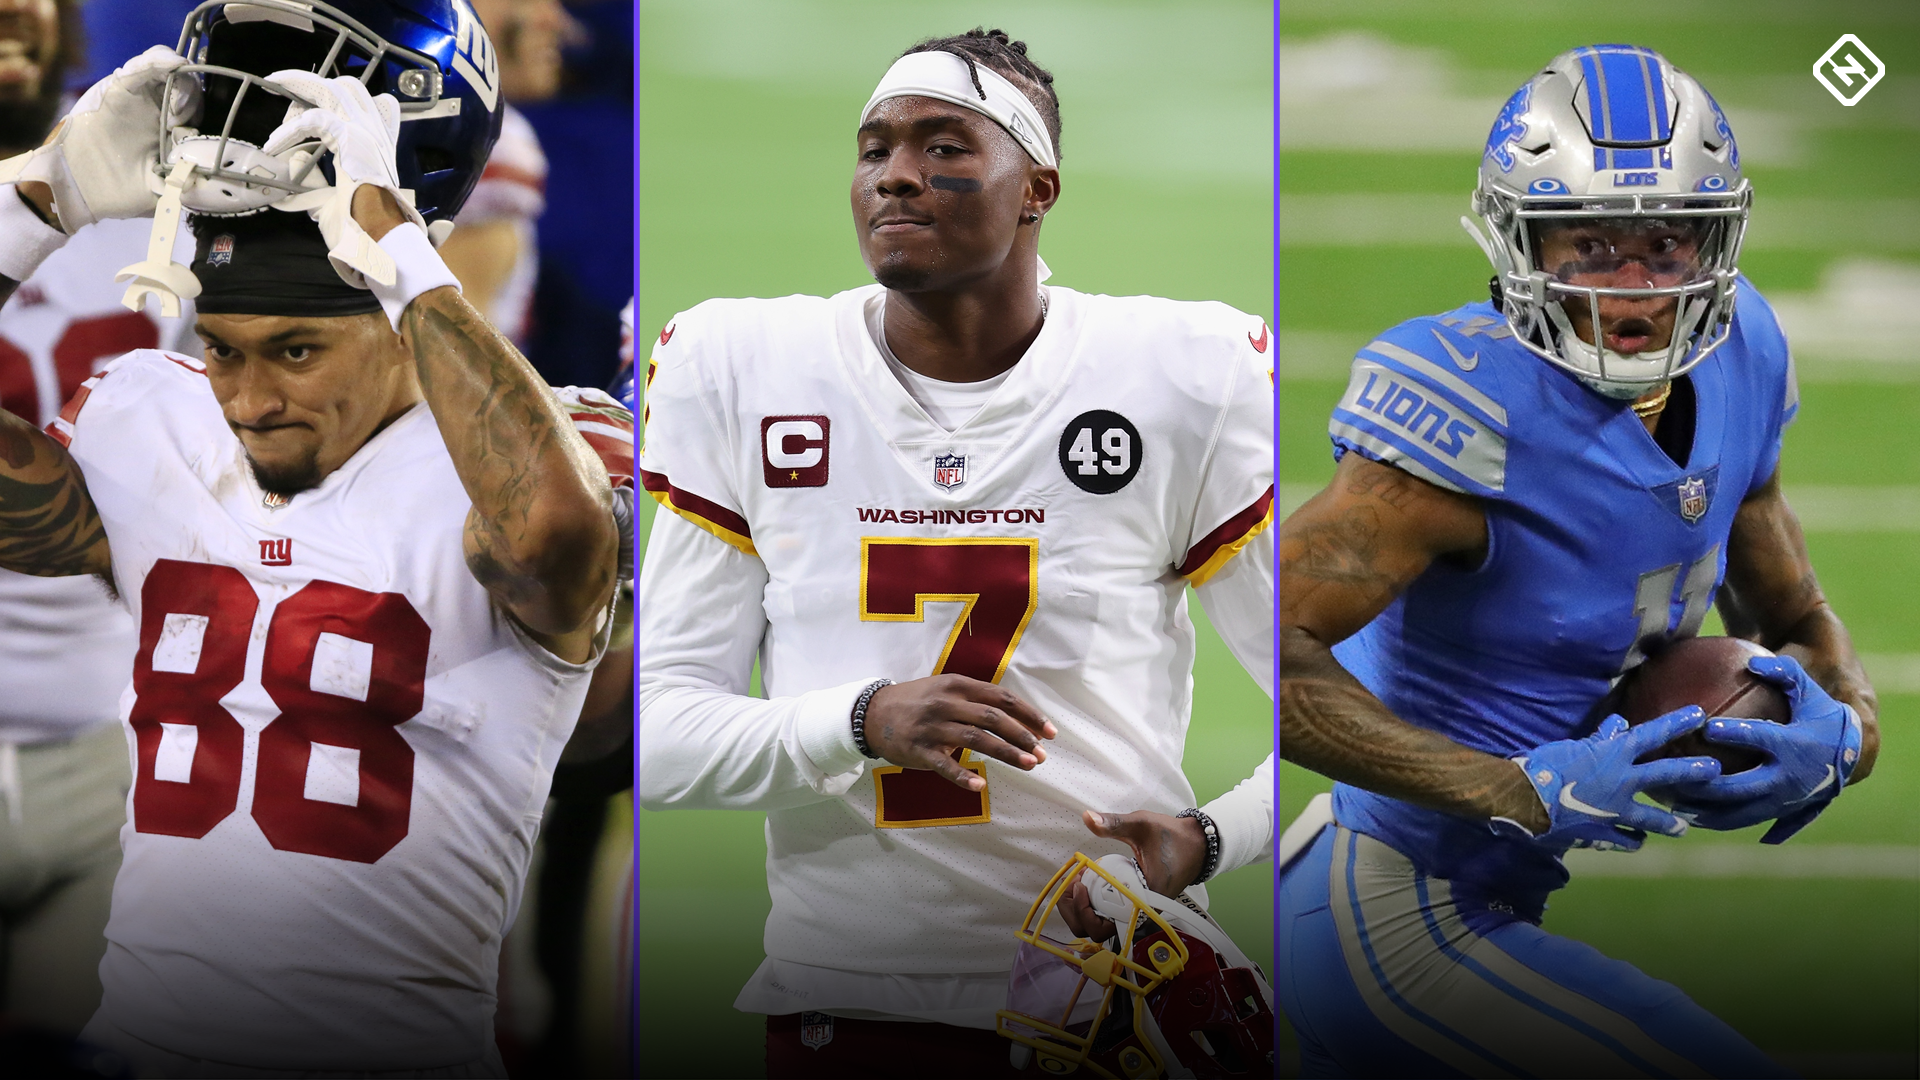 NFL trade rumors: 15 players most likely to be traded at the 2020 deadline